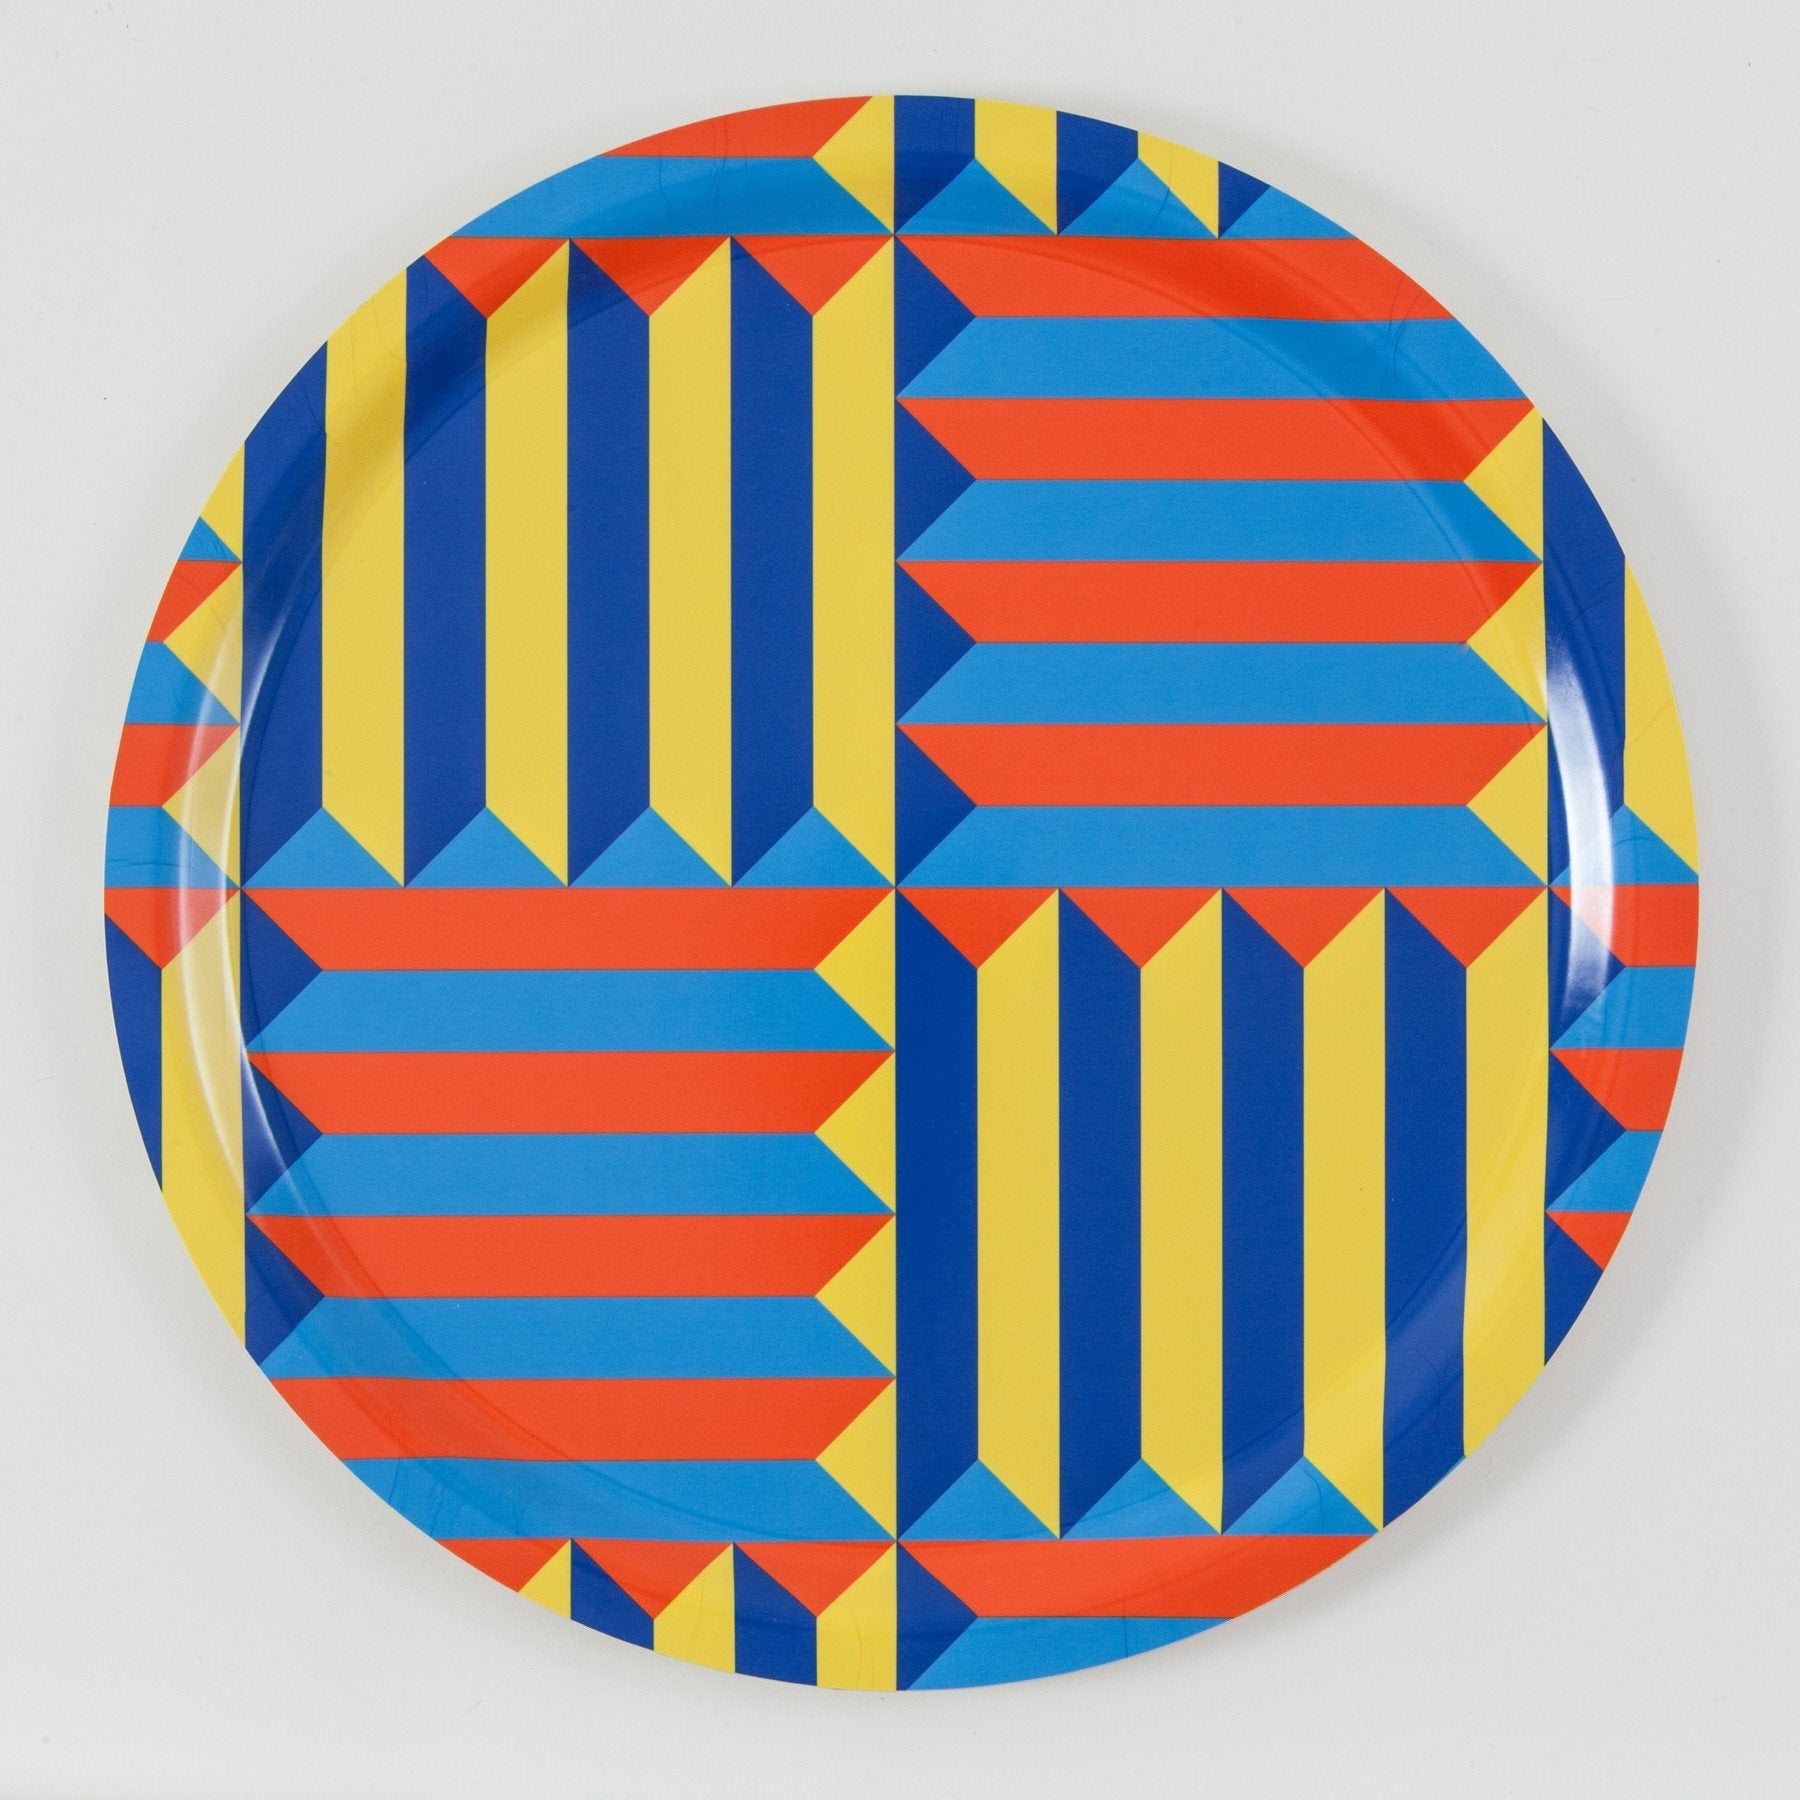 Jim Isermann @ Placewares, Round Tray, Pattern 4 - Jim Isermann @ Placewares, - Placewares